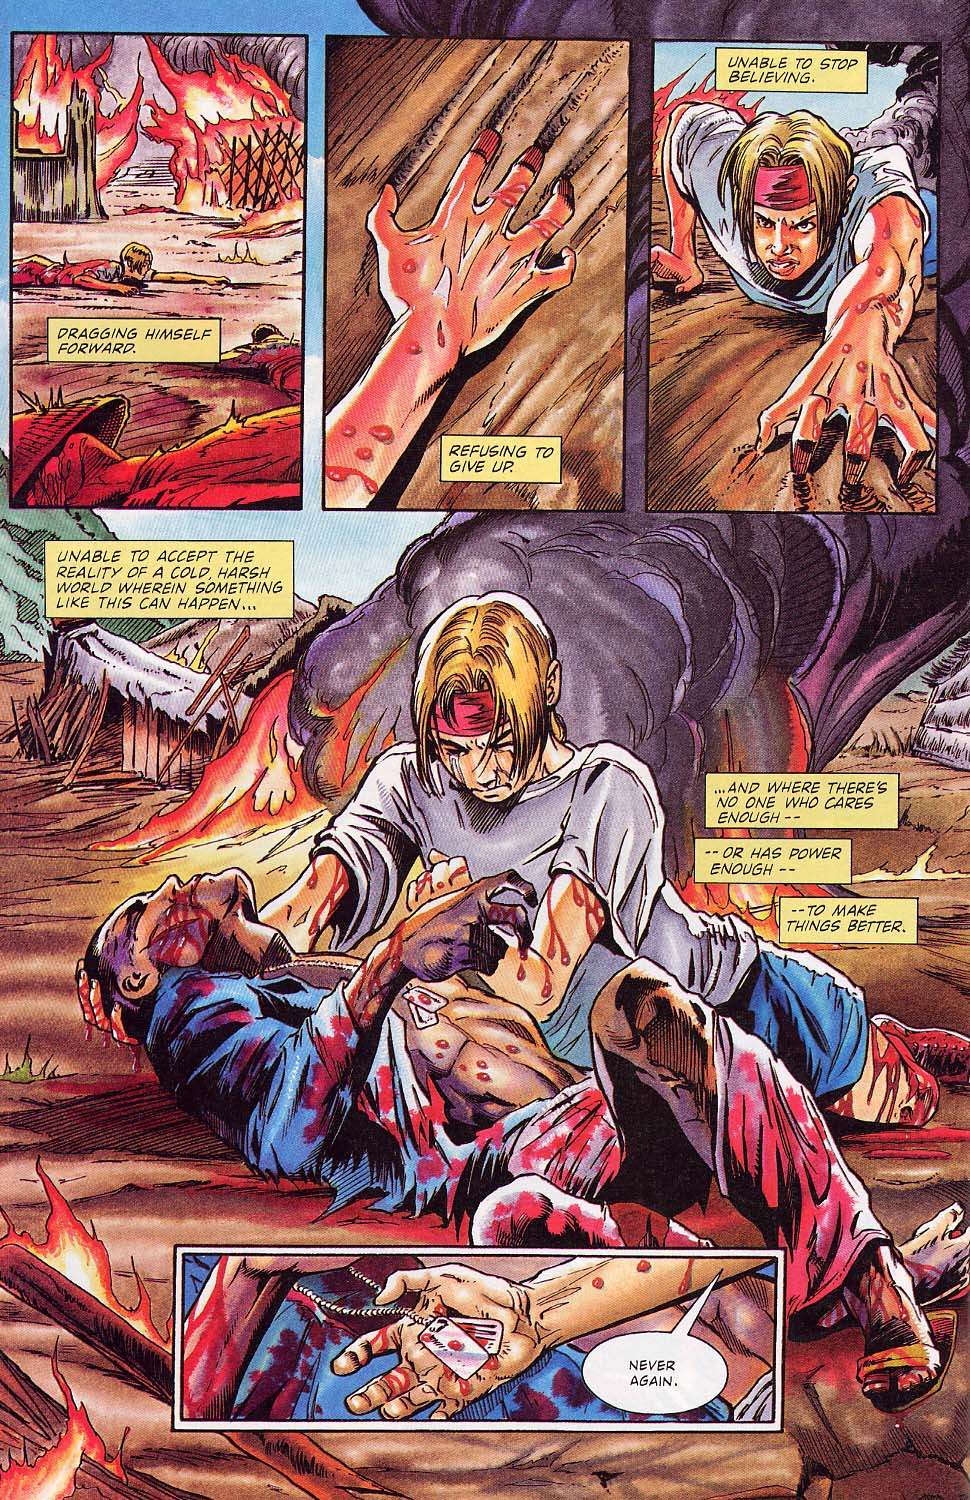 Read online Charlemagne comic -  Issue #1 - 26